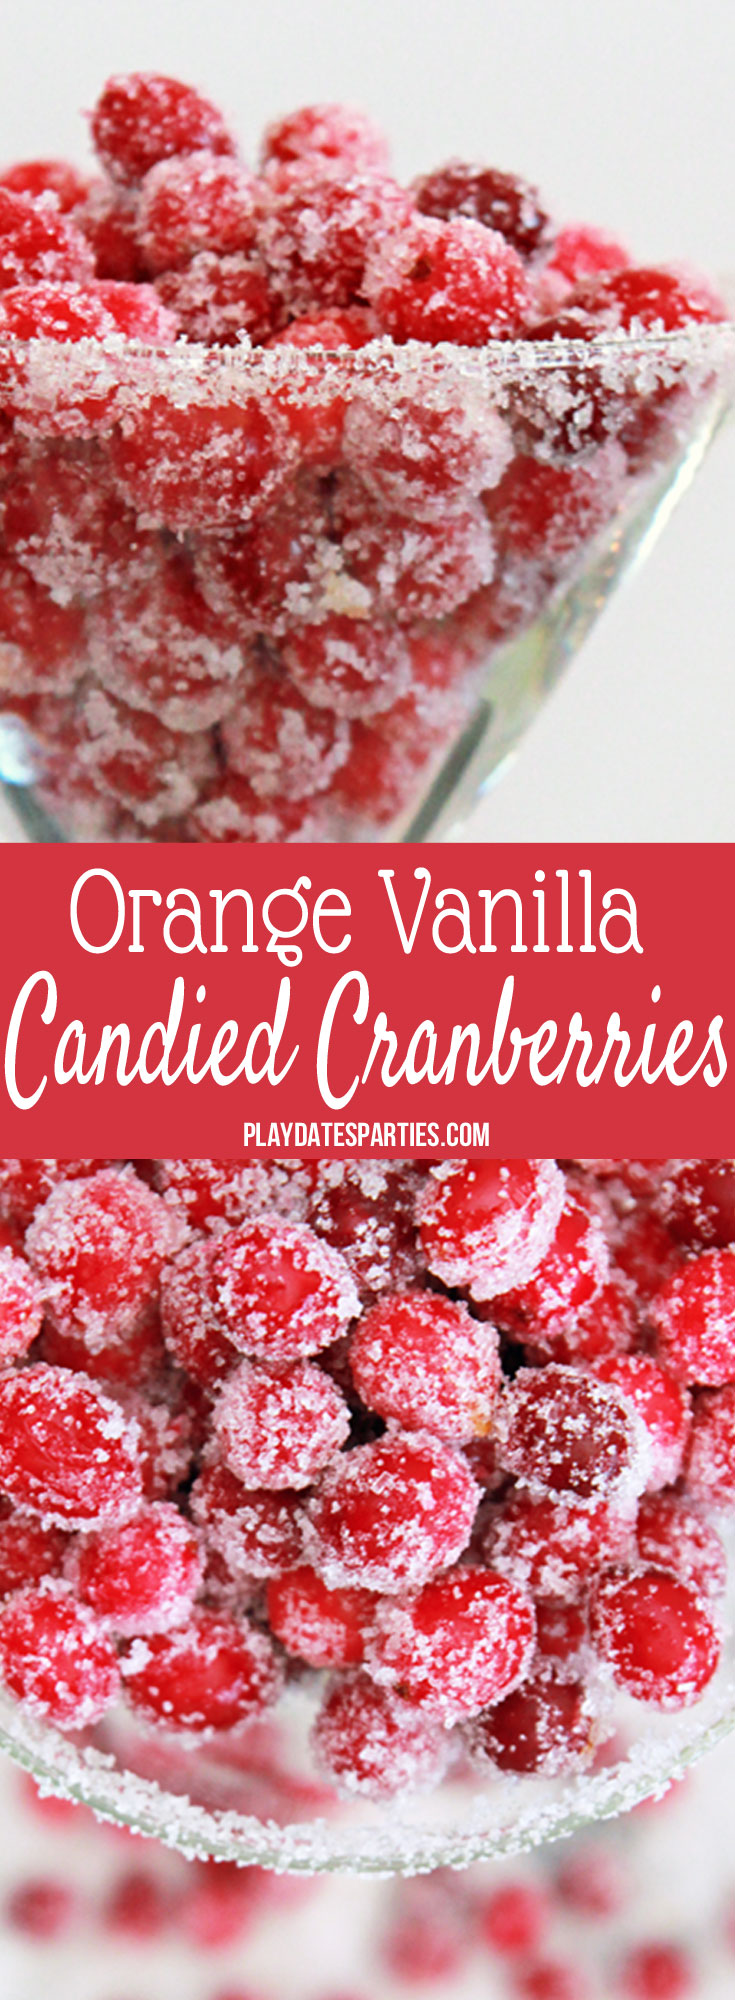 Friends and family are always asking me to make this orange vanilla candied cranberries recipe for Thanksgiving and Christmas desserts. Best of all, they're so simple to make and SO pretty! These sugar coated holiday treats are the perfect unique treat for parties and for coworkers at the office. Yum! #cranberries #candy #christmasdesserts #recipe #easyholidayrecipes #holidayrecipes #christmasdesserts #holidayfood #holidaytreats